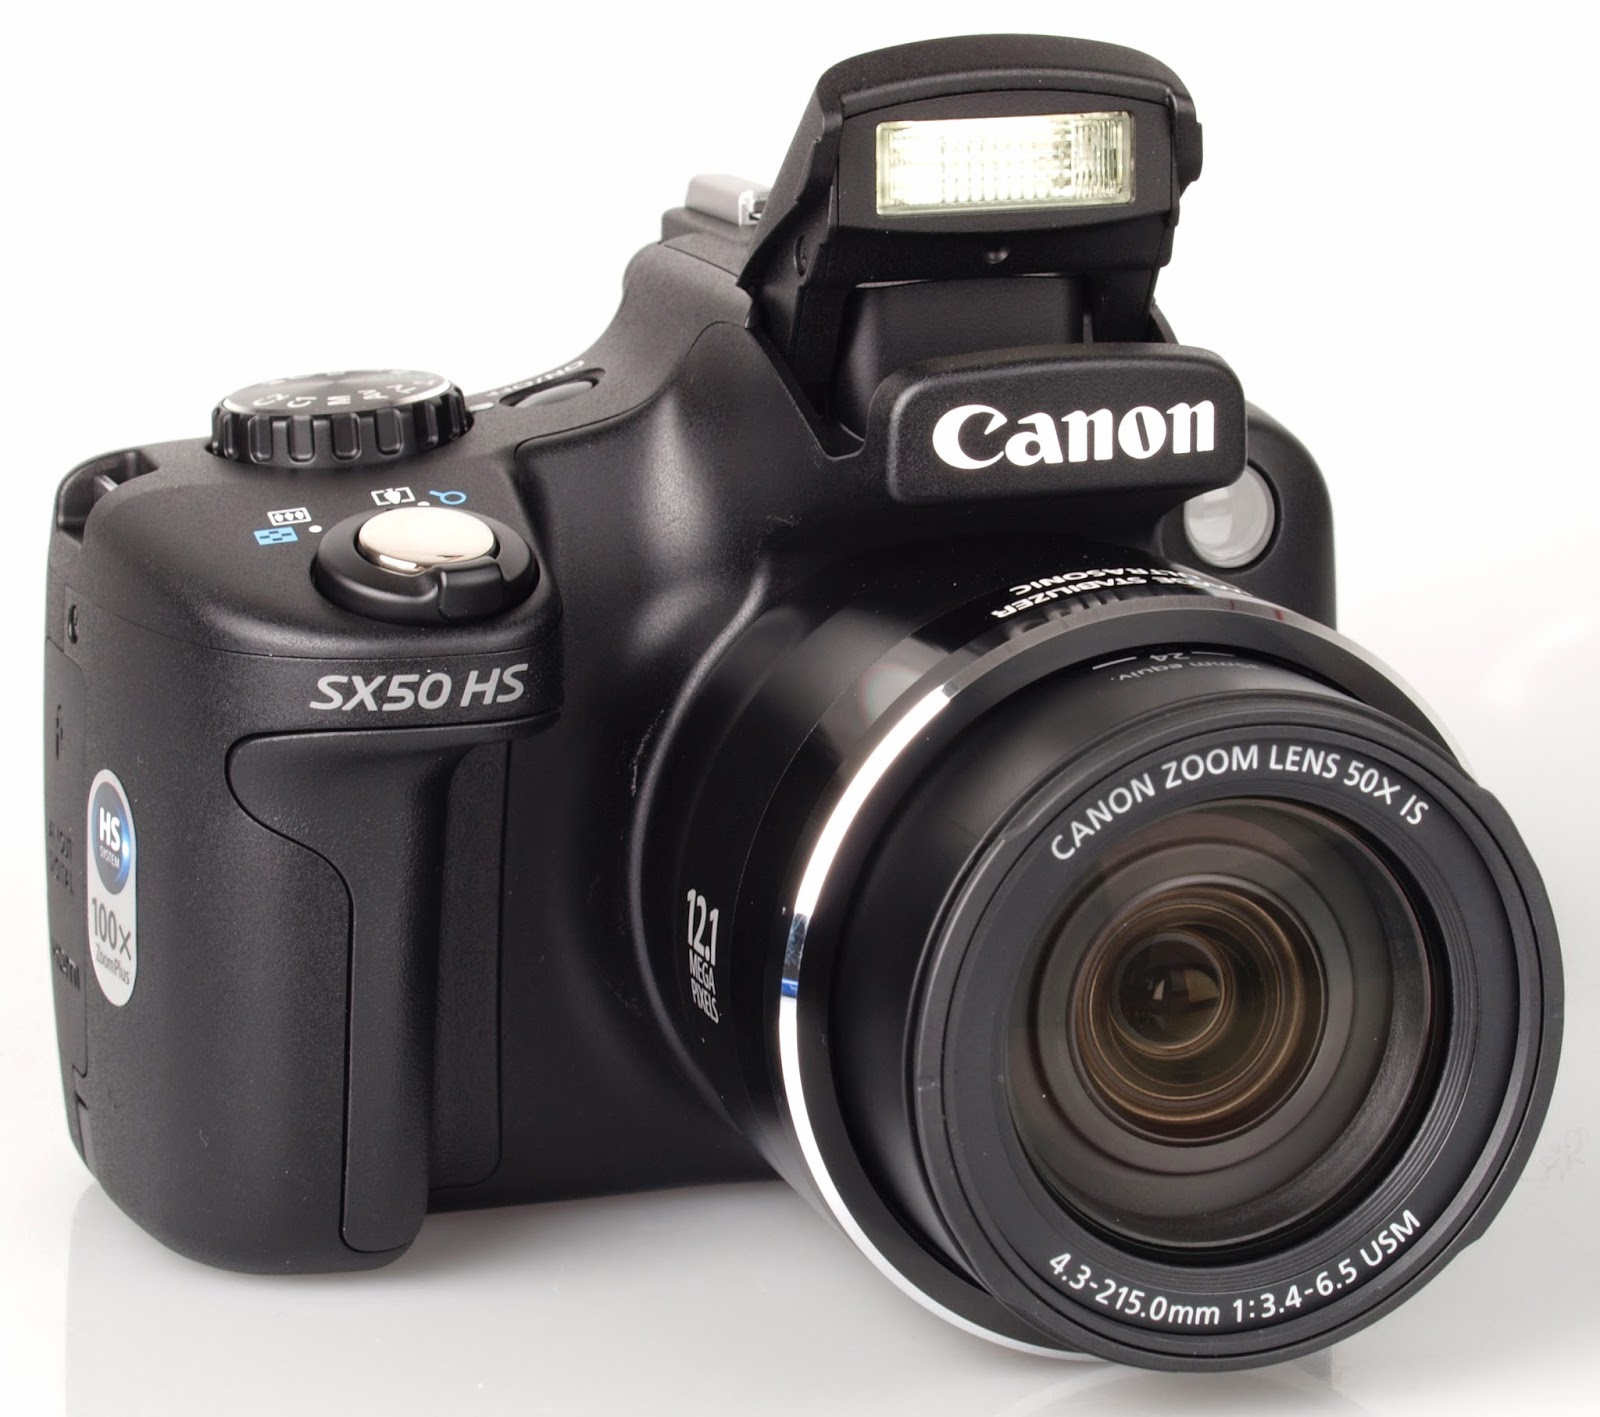 Canon PowerShot SX50 HS, check your Canon camera, health issues, Canon withdraw PowerShot SX 50 HS, canon camera, alergic, eye iritation